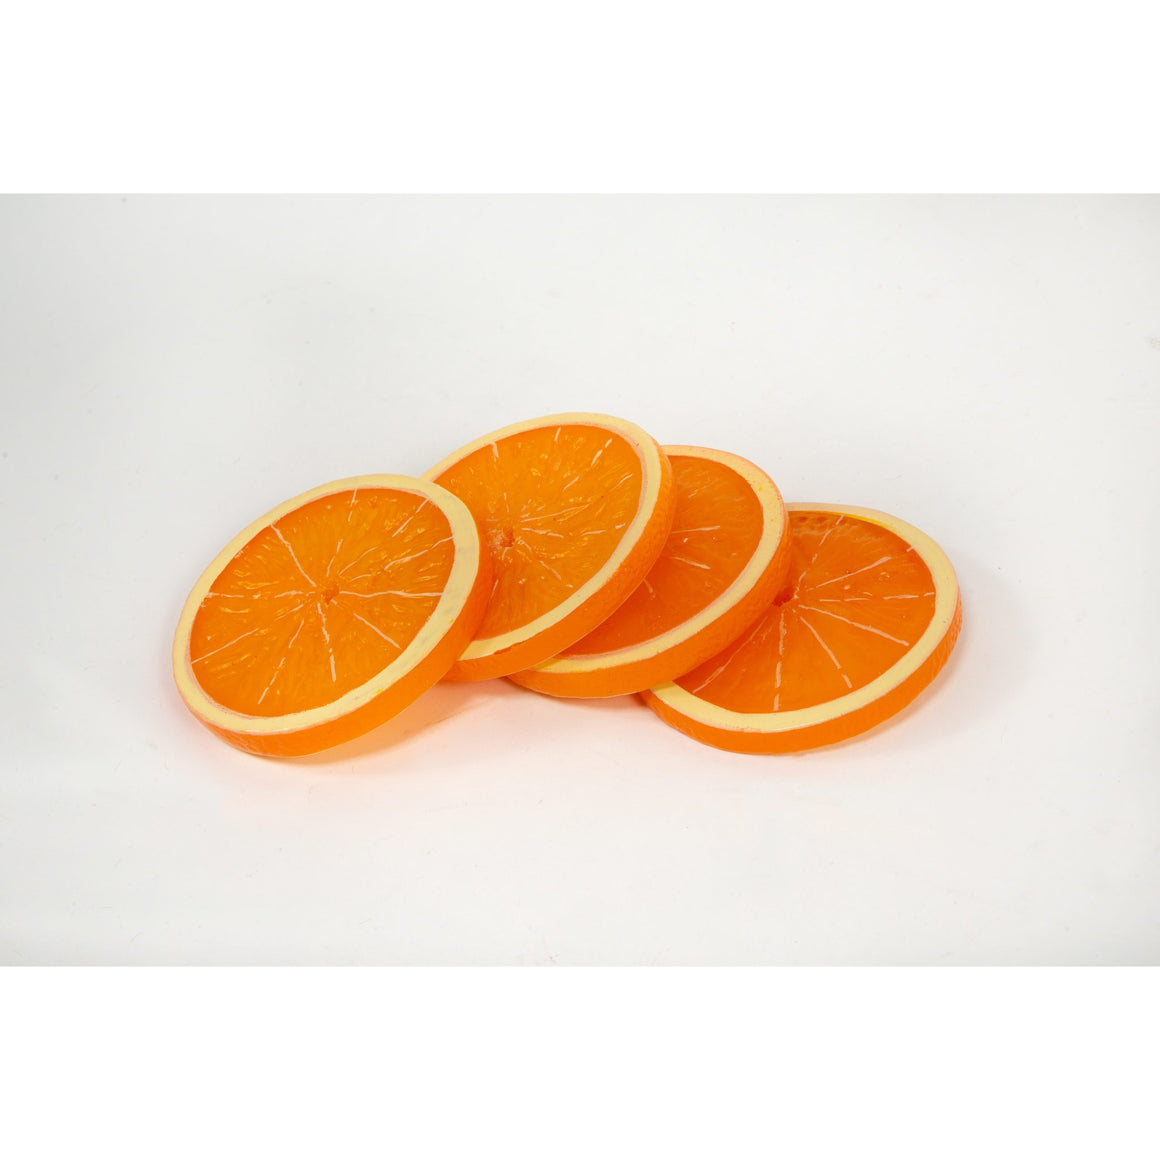 Orange Slices (Set of 4)